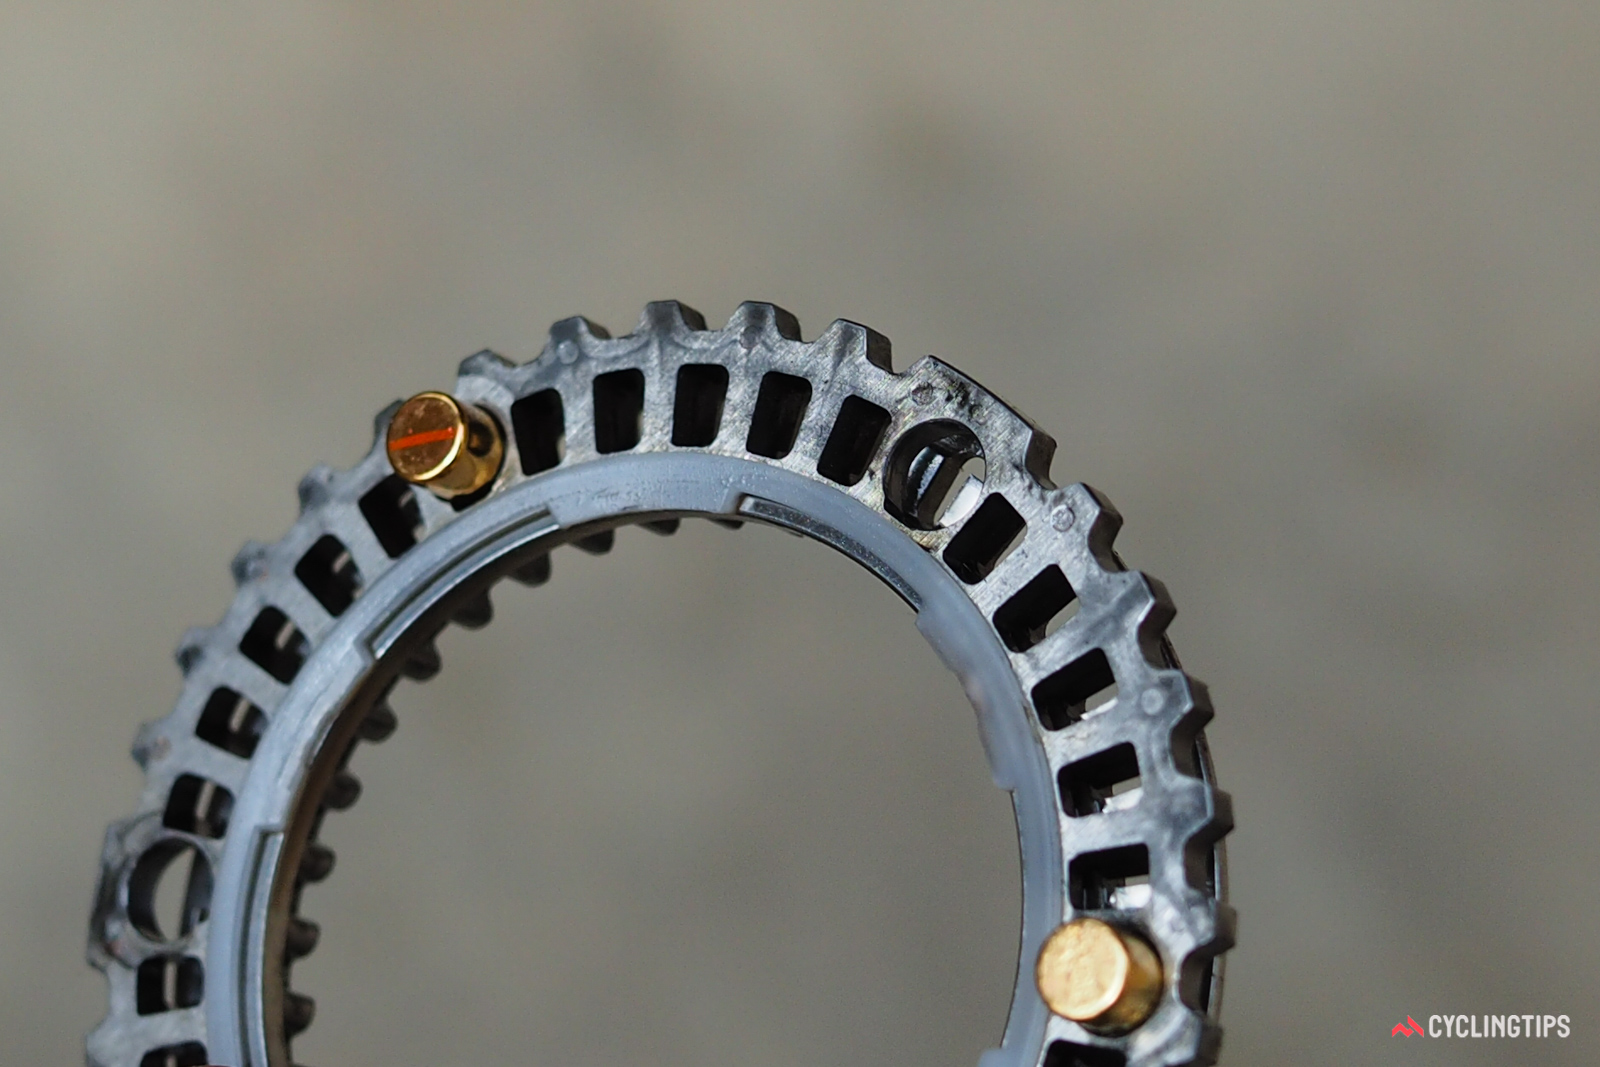 Three magnets pull the ratchet rings against each other, similar to what steel springs would do in a conventional hub.